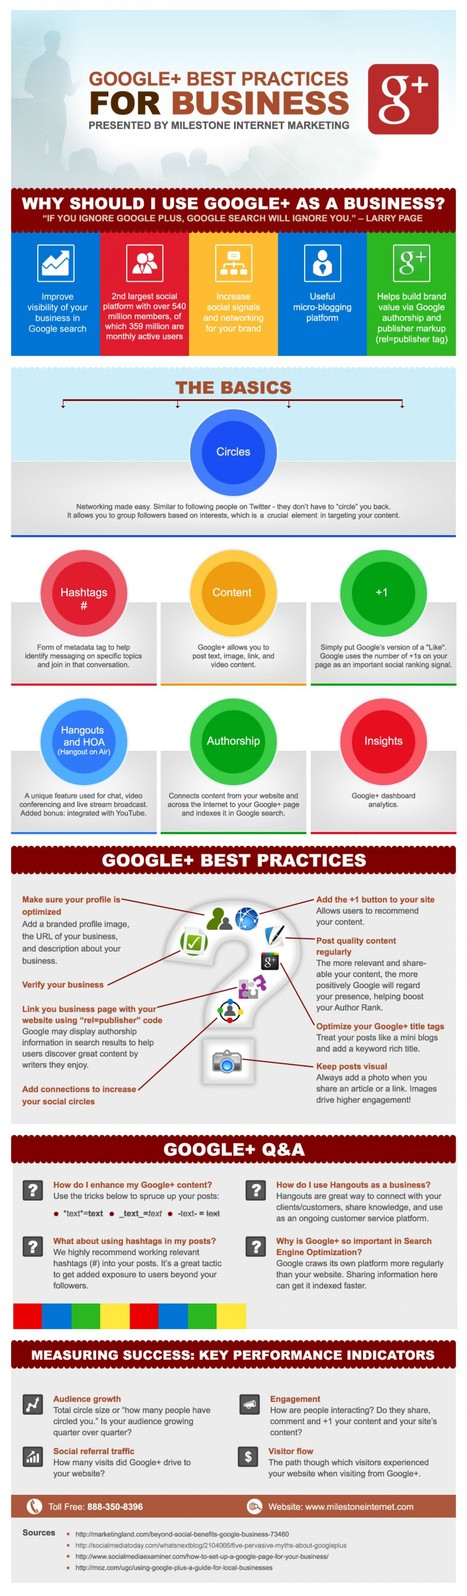 INFOGRAPHIC: Google+ Best Practices for Business | Cloud Central | Scoop.it